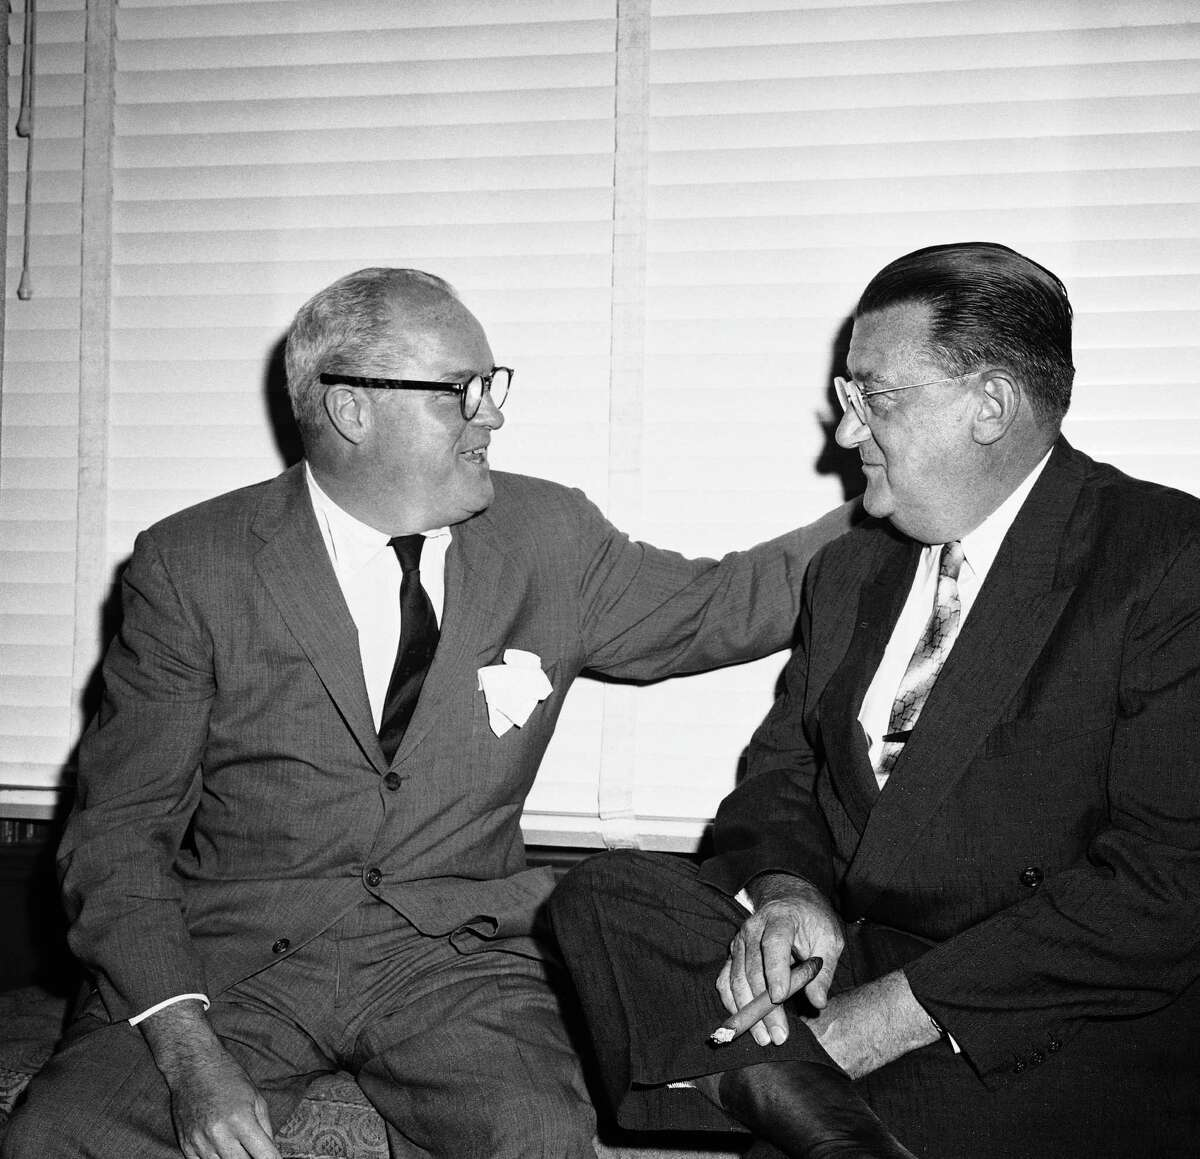 Horace Stoneham (left), who brought the New York Giants to San Francisco, died in 1990. He is shown with Walter O'Malley, who brought the Brooklyn Dodgers to Los Angeles.